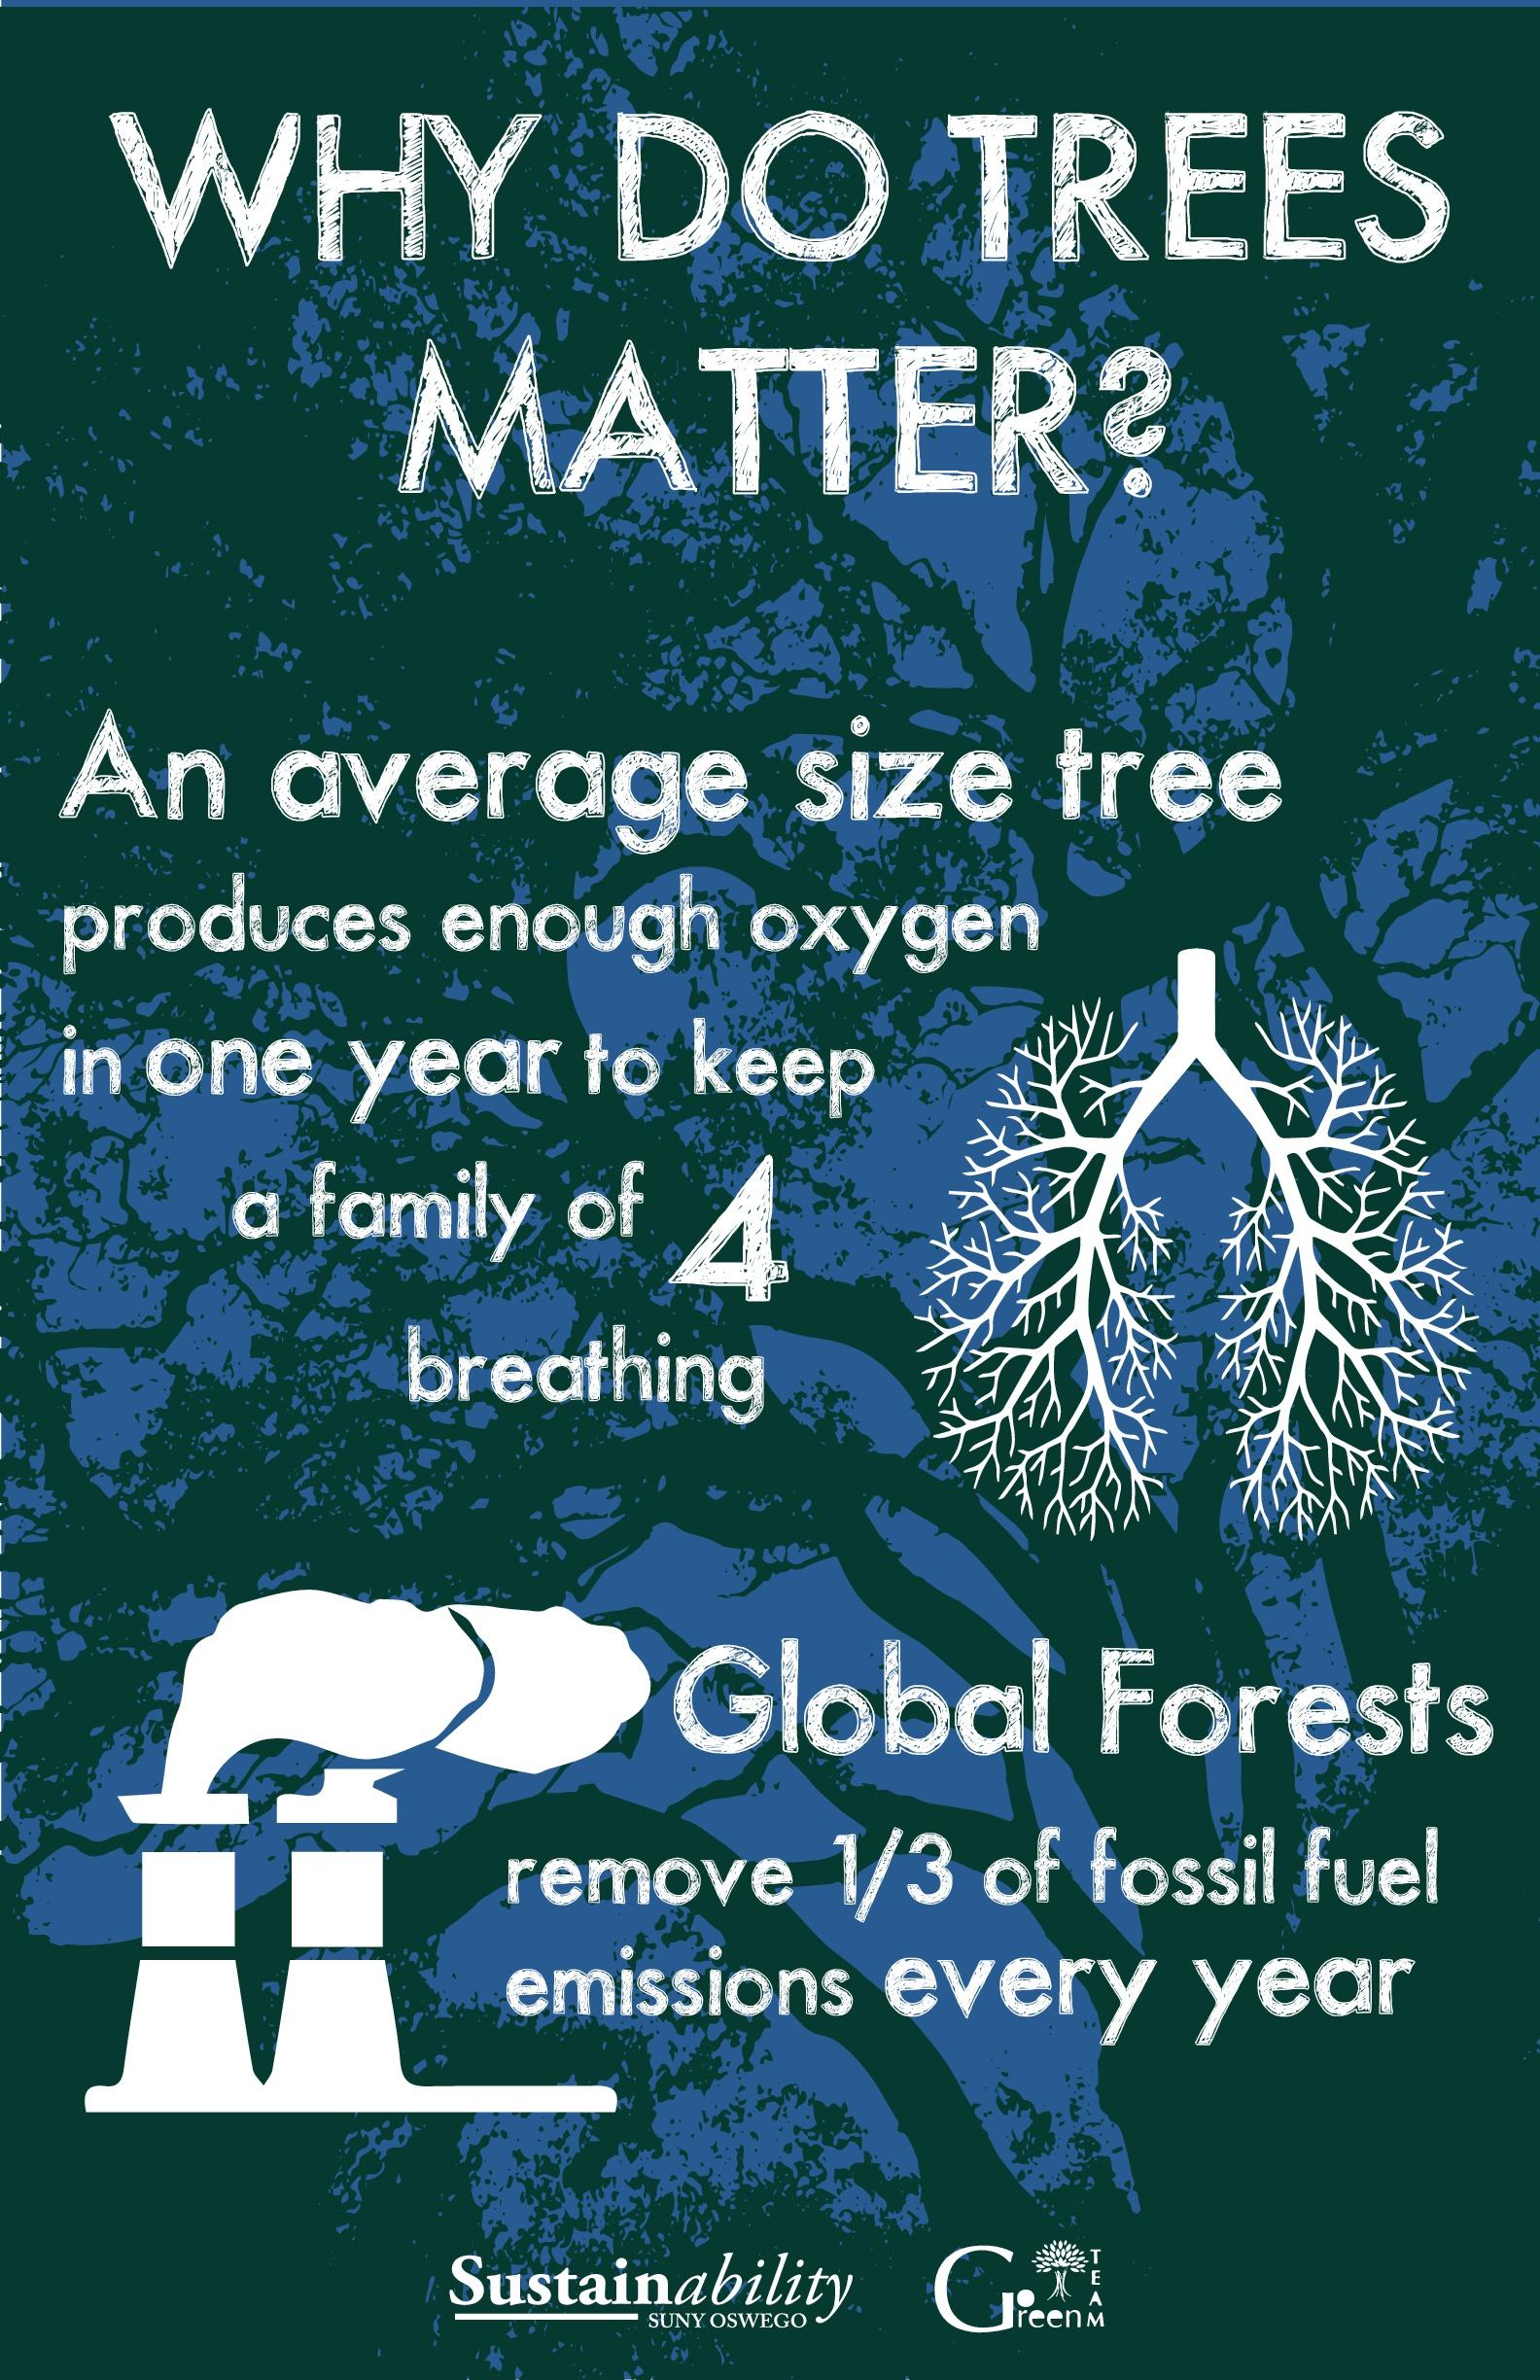 Why Do Trees Matter?: An average size tree produces enough oxygen in one year to keep a family of 4 breathing. Global forests remove 1/3 of fossil fuel emissions every year.